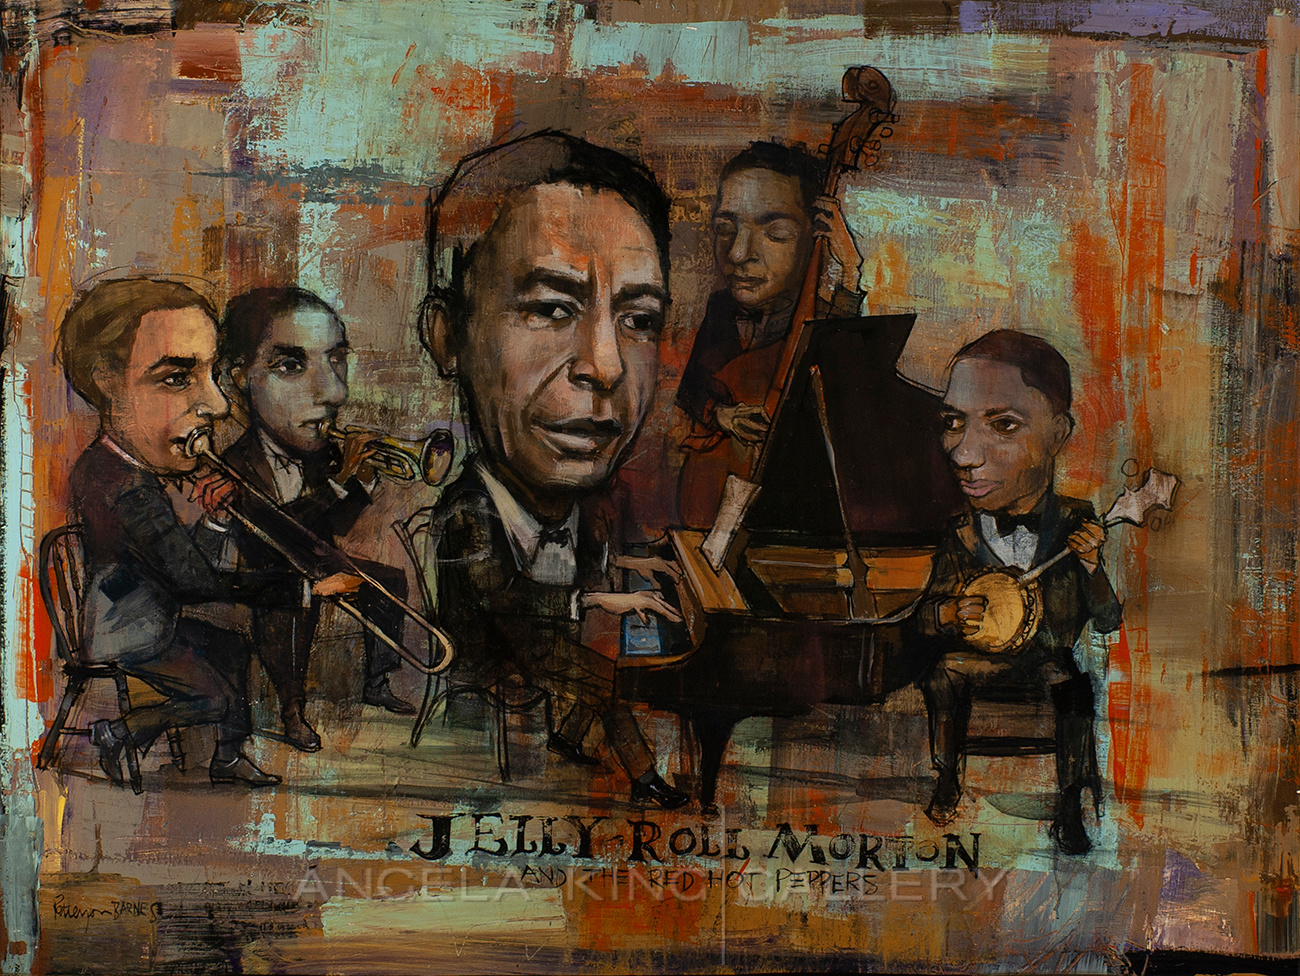 Jelly Roll Morton and the Red Hot Peppers